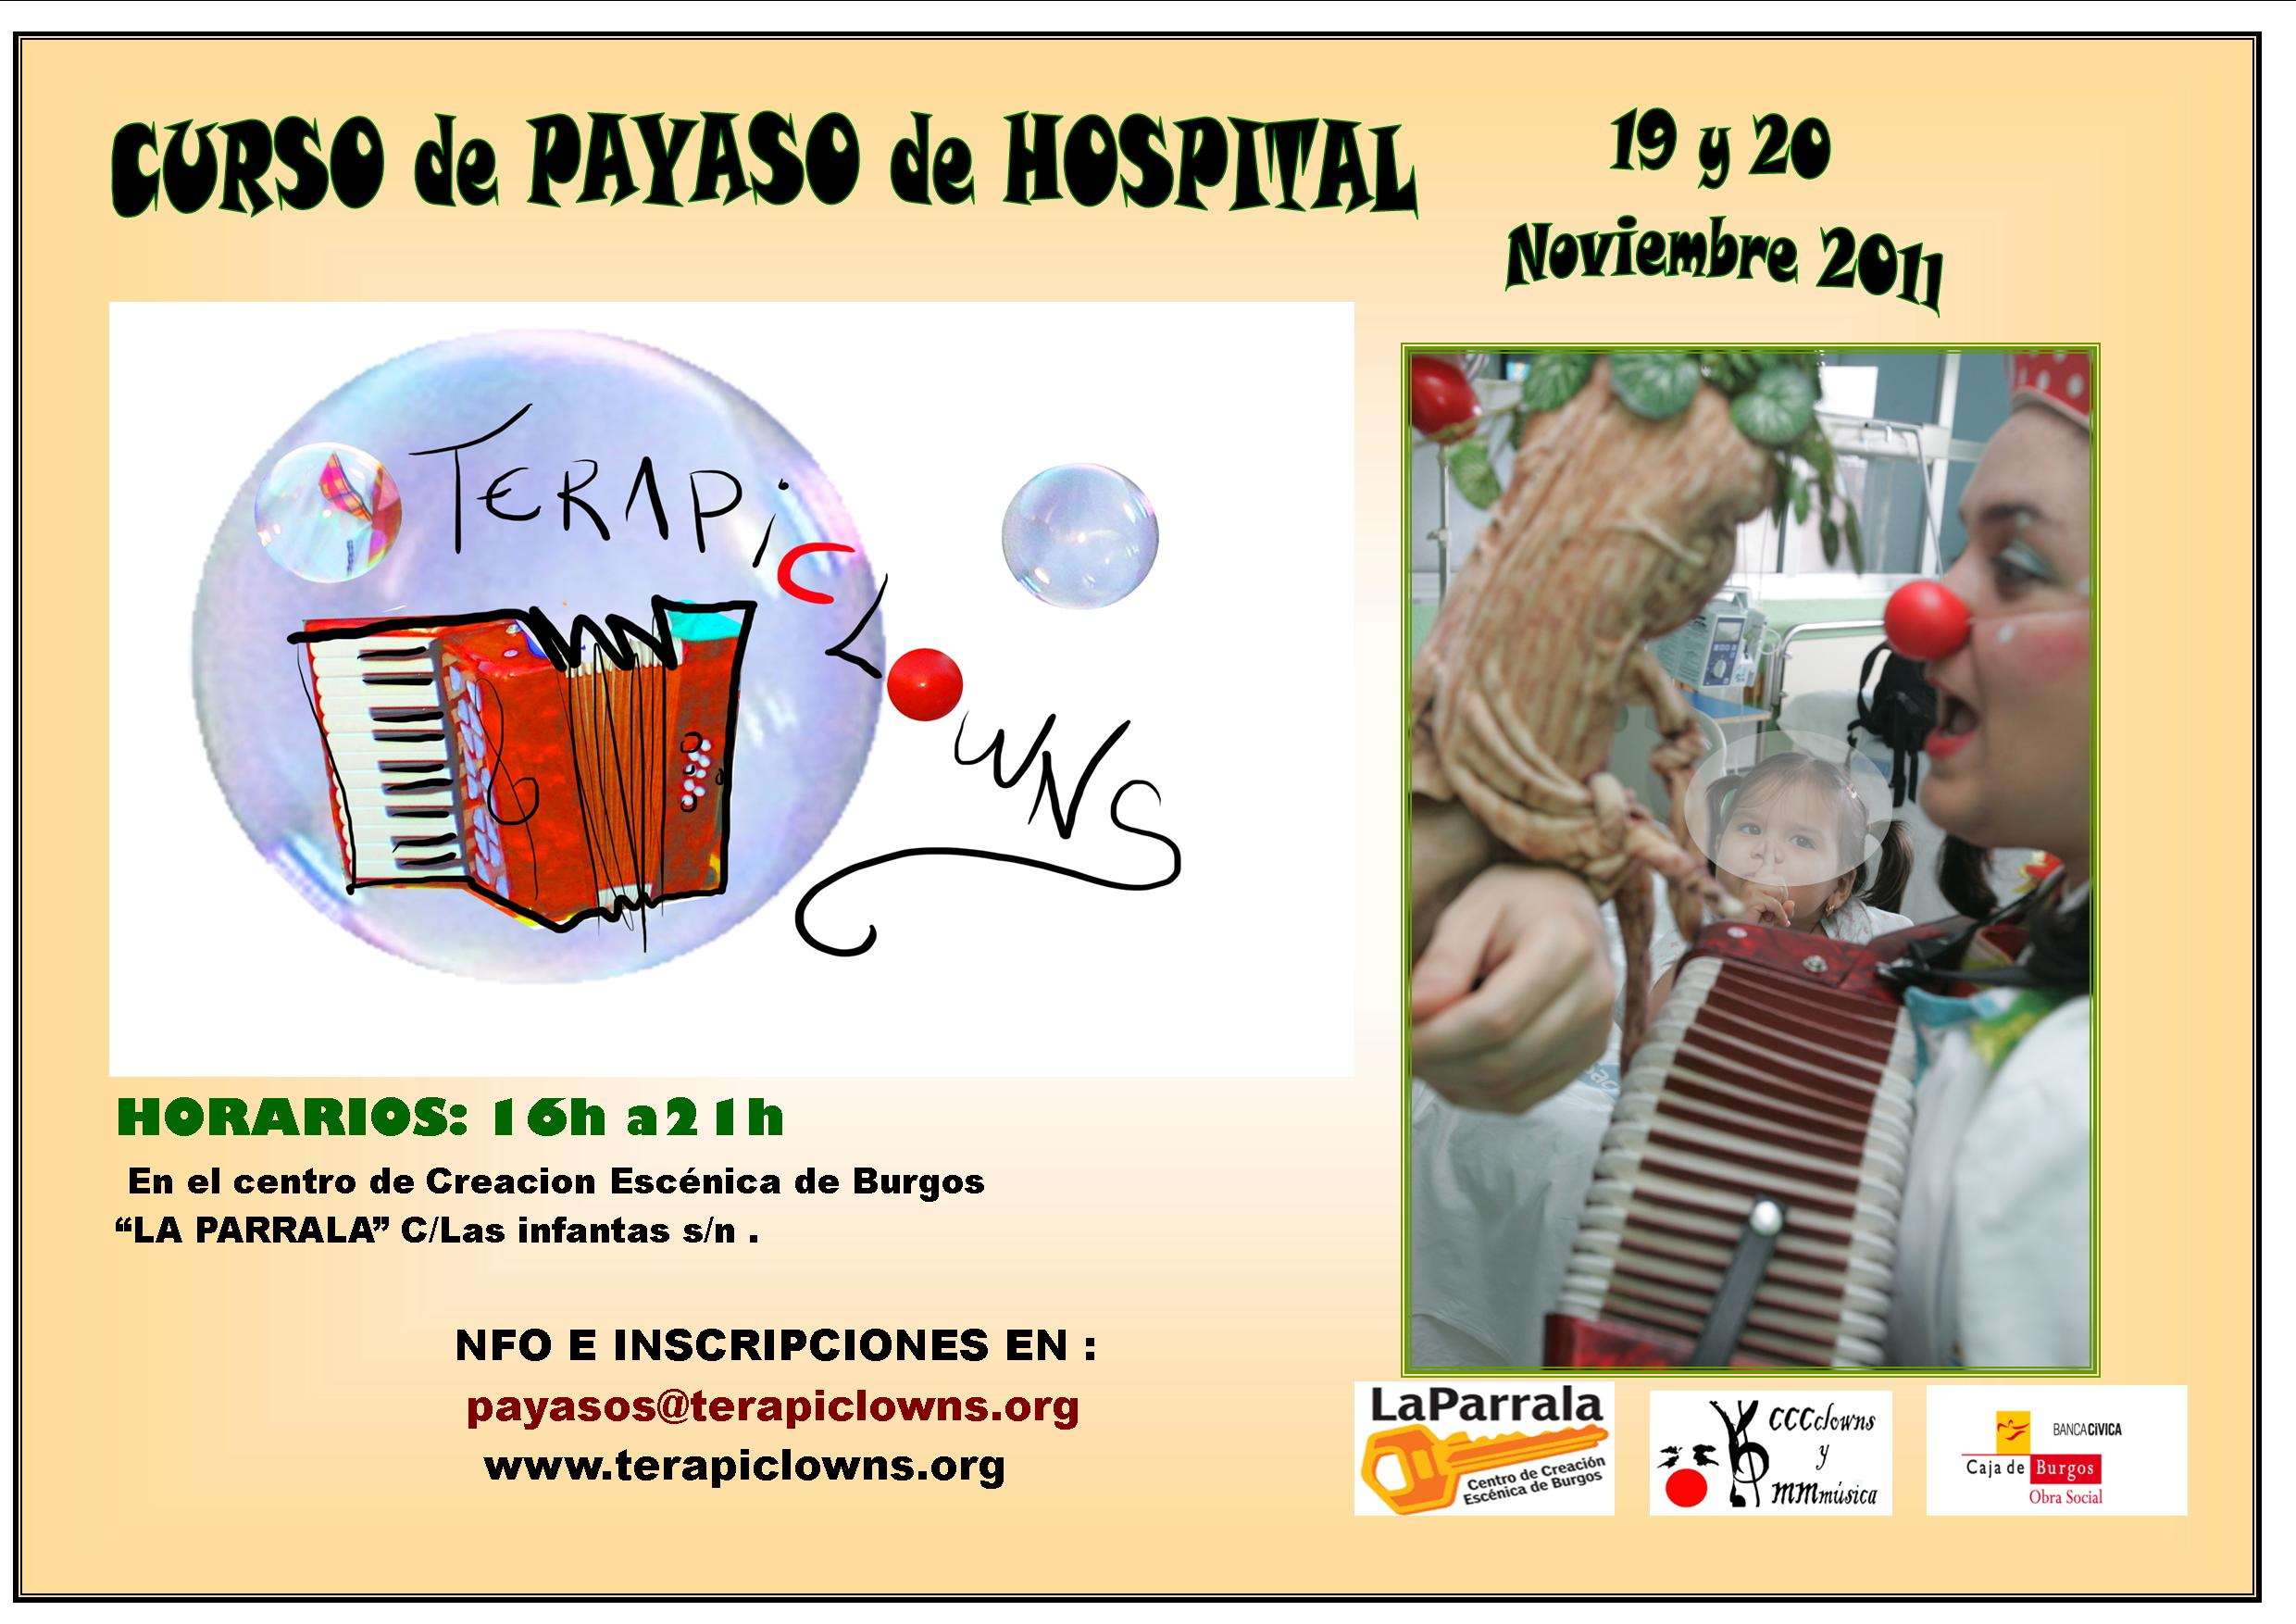 cartel-curso-payaso-hospit-nov1